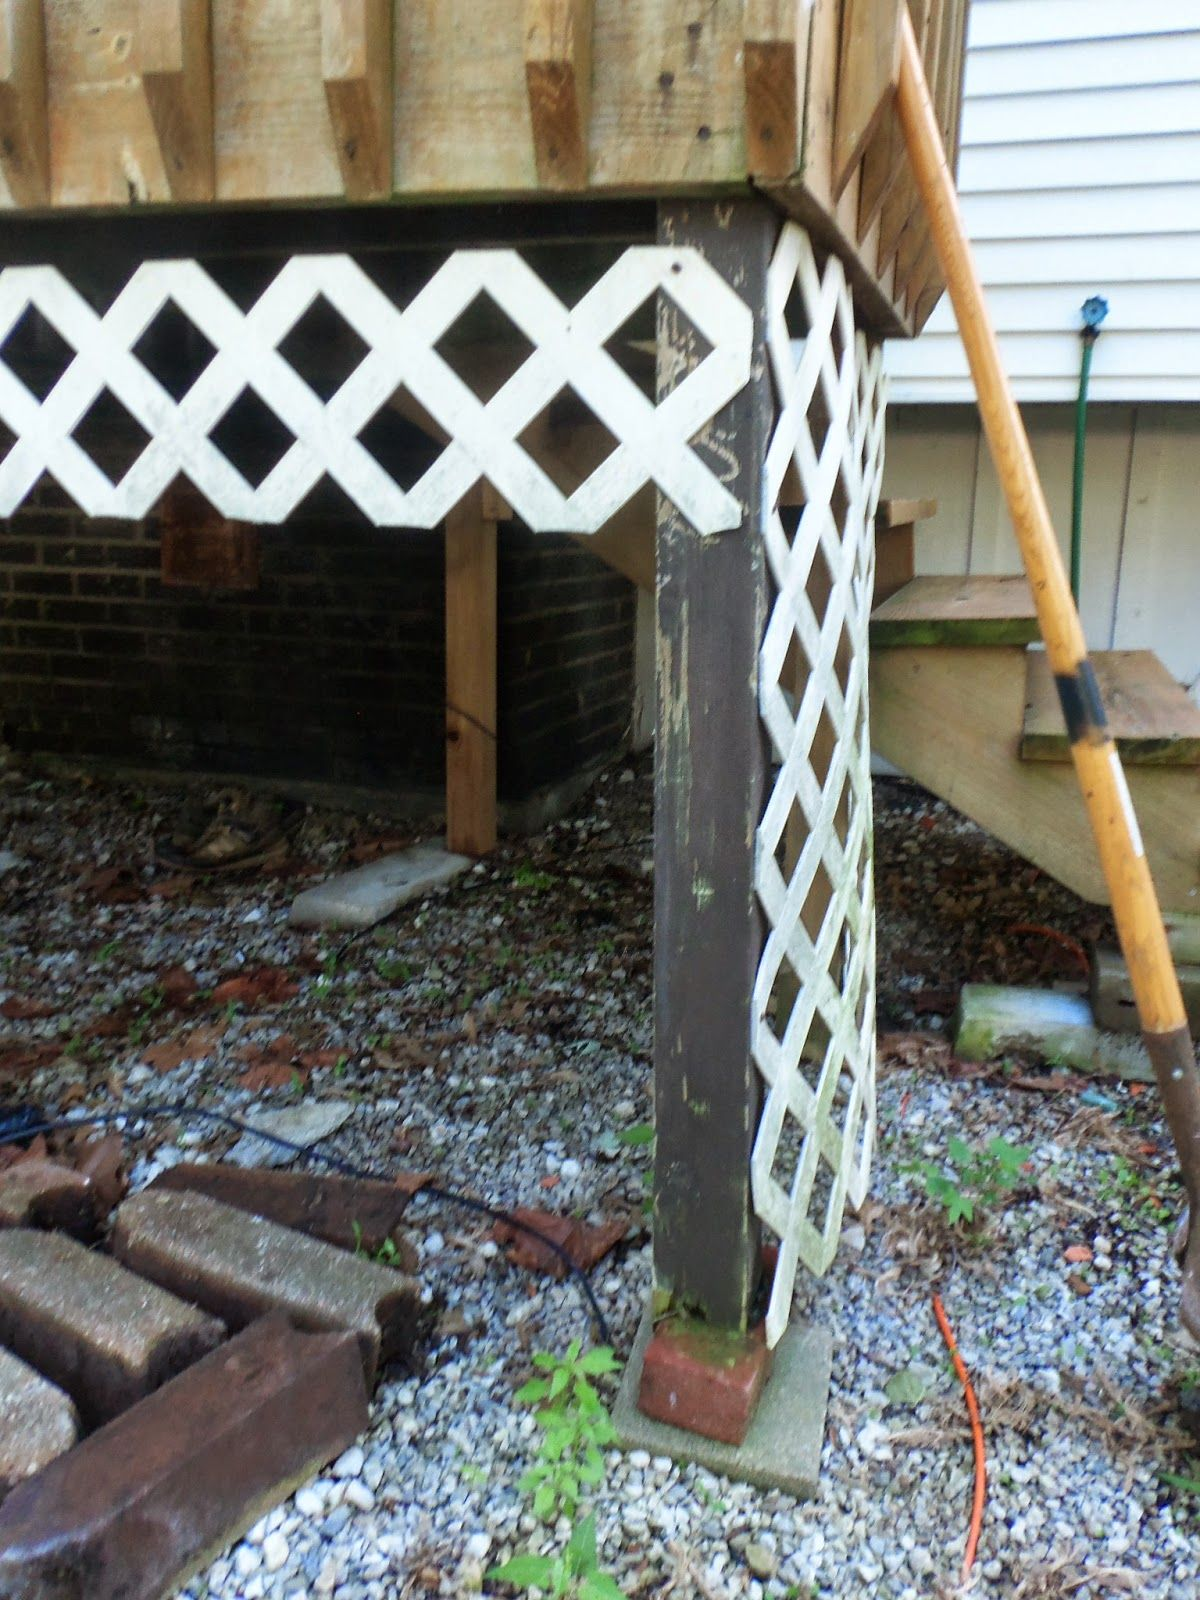 Home Repair · The Schorr Thing Backyard Remodel Just Getting Started Get Started Big Project